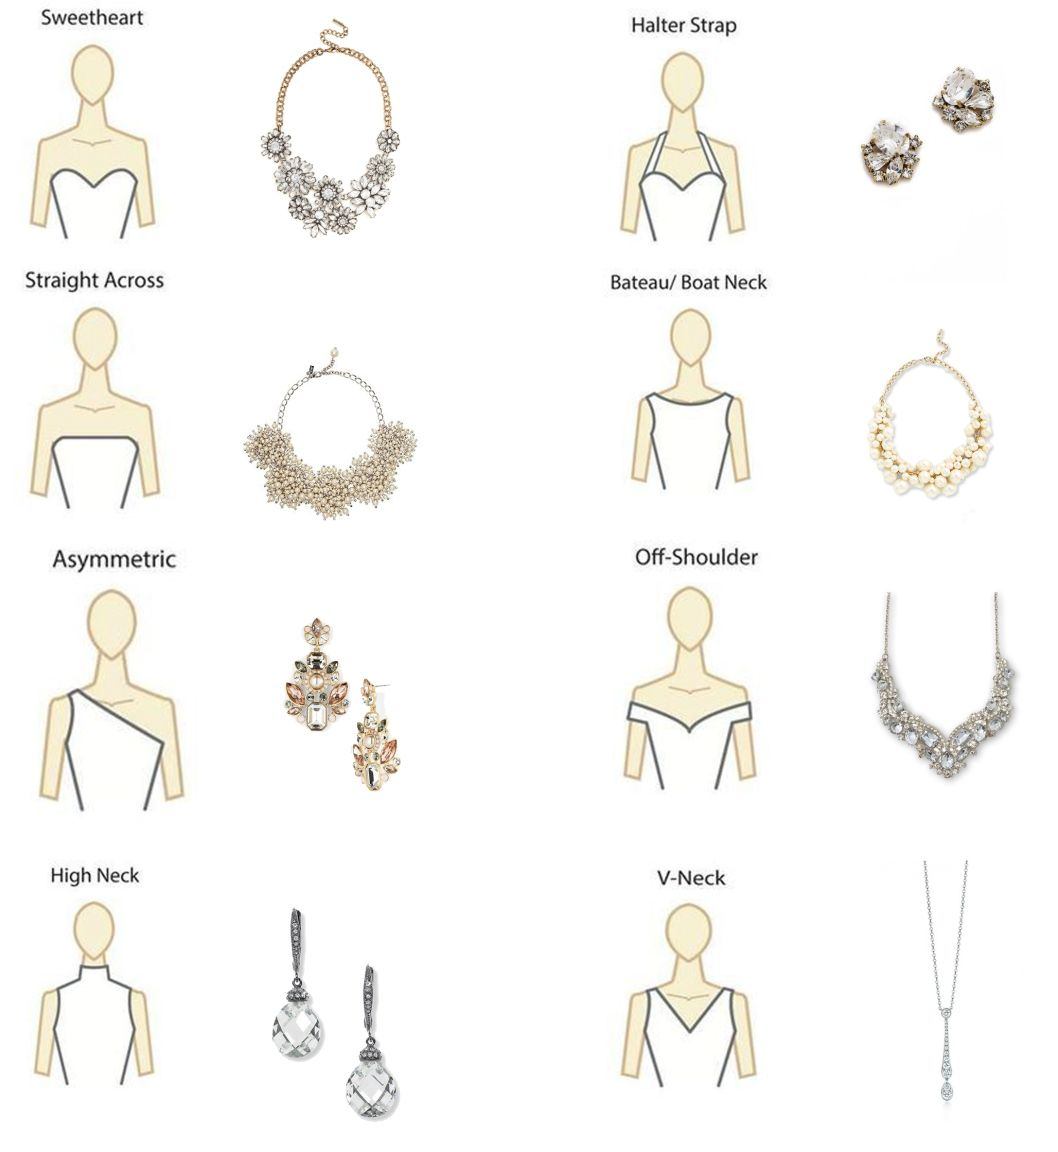 Necklace Or Earrings Necklace For Neckline Wedding